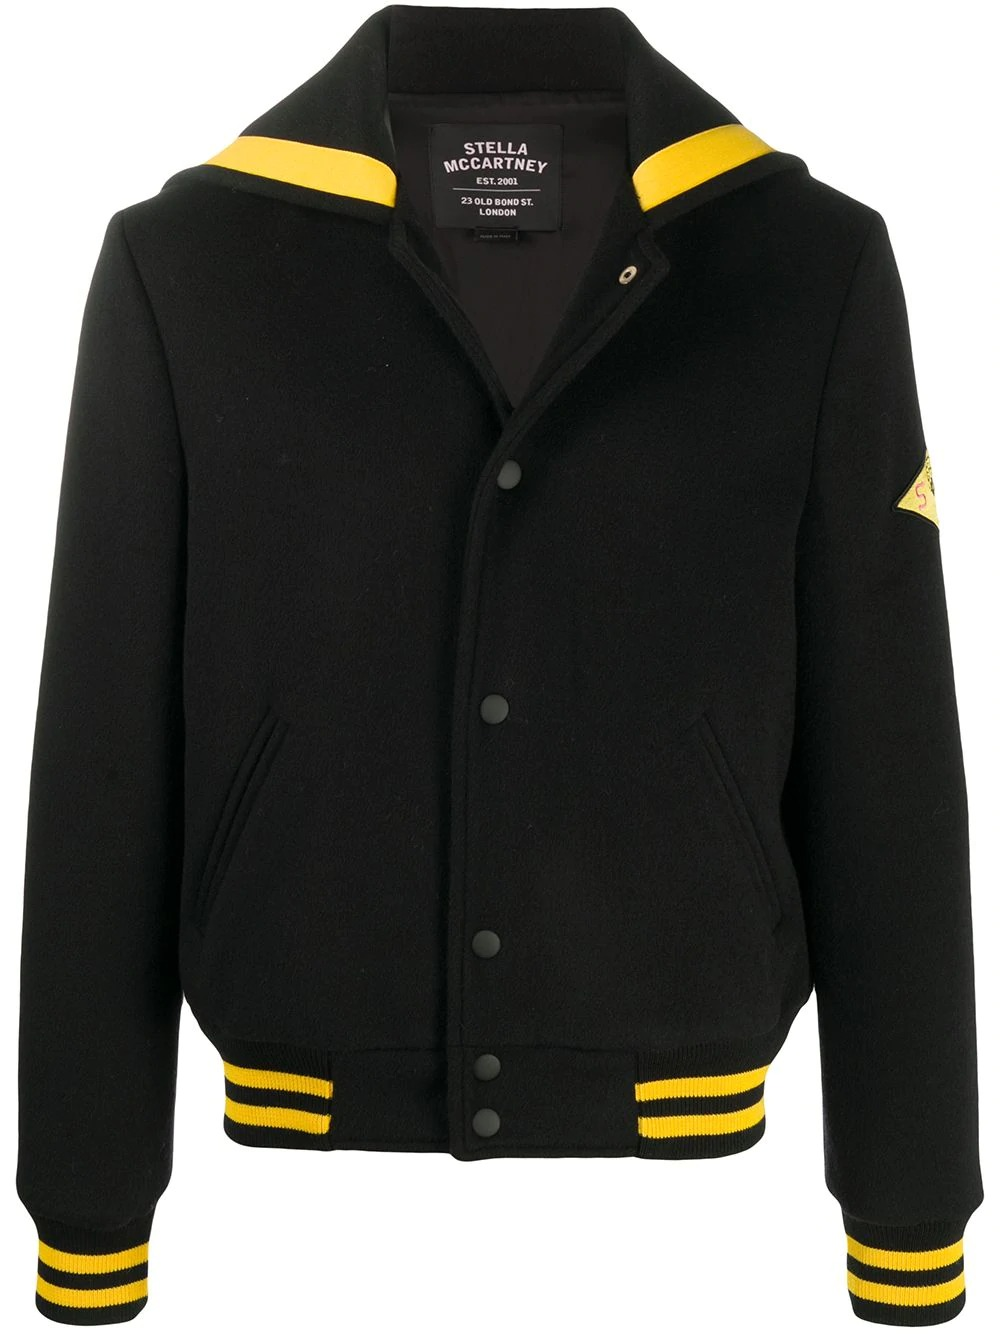 Stella McCartney Graphic Patch Jacket , best sustainable clothing